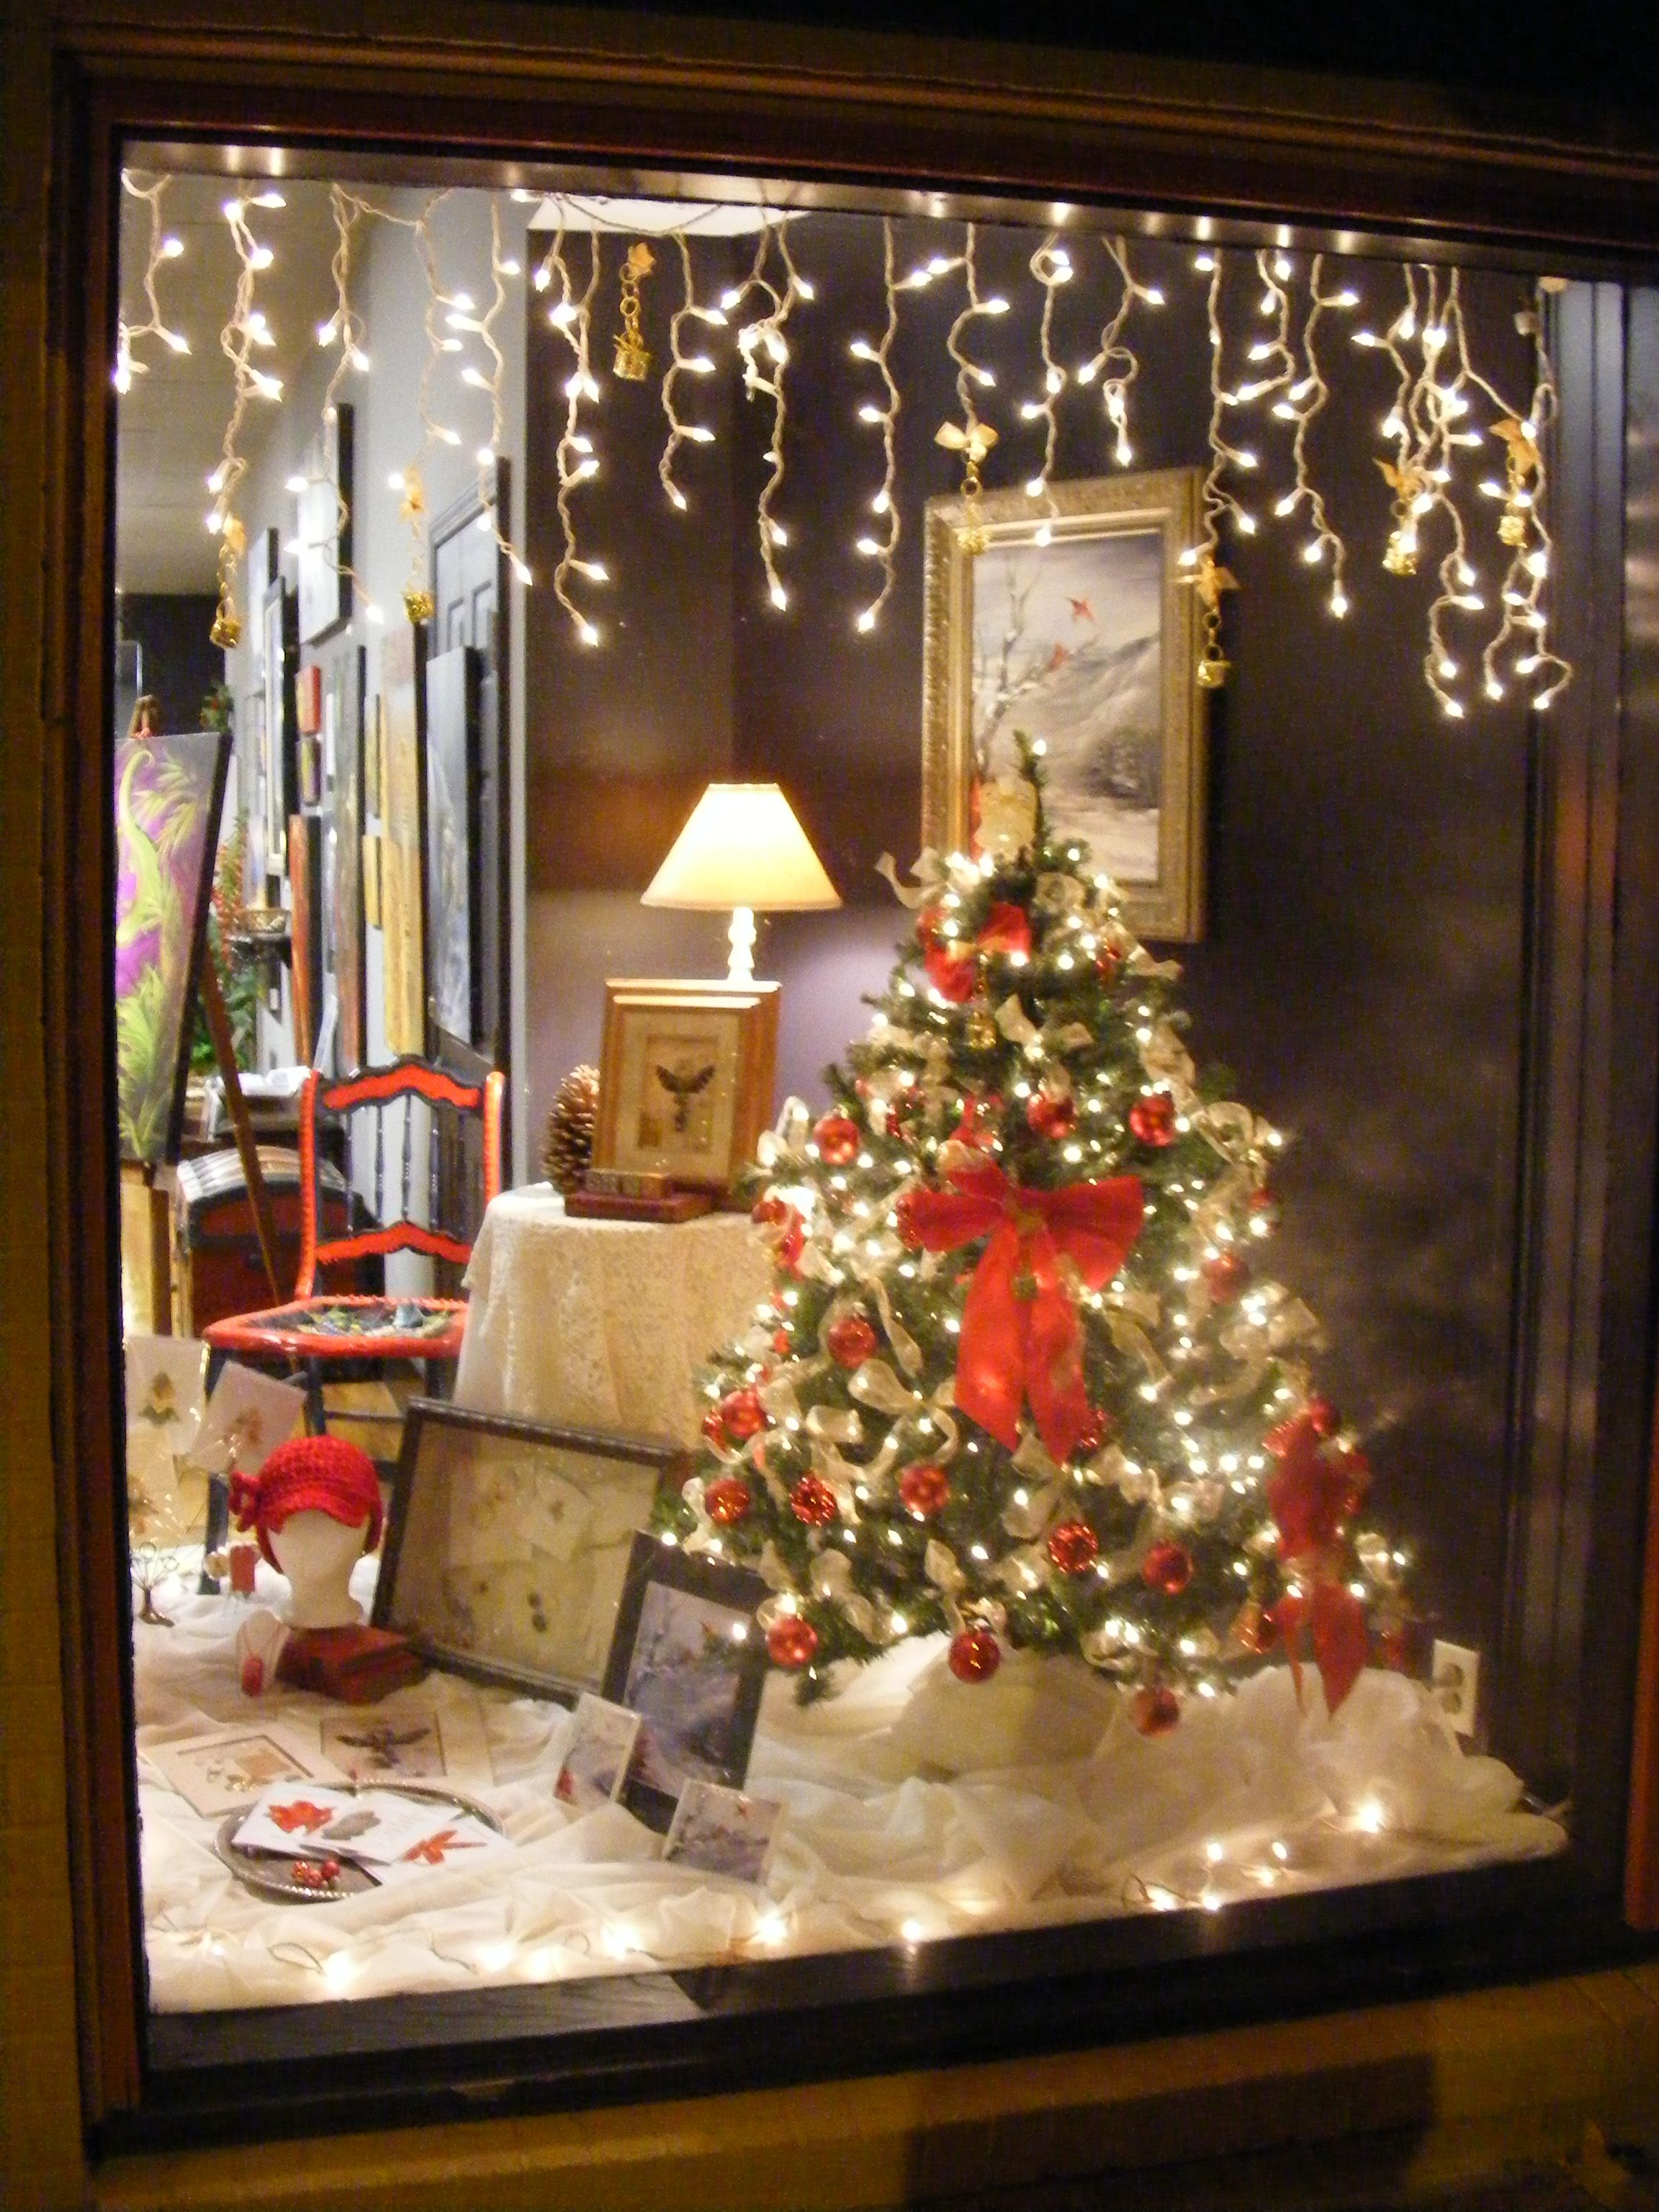 Christmas ornament display case - Our Christmas Window Display 2011 At Artistic Treasures